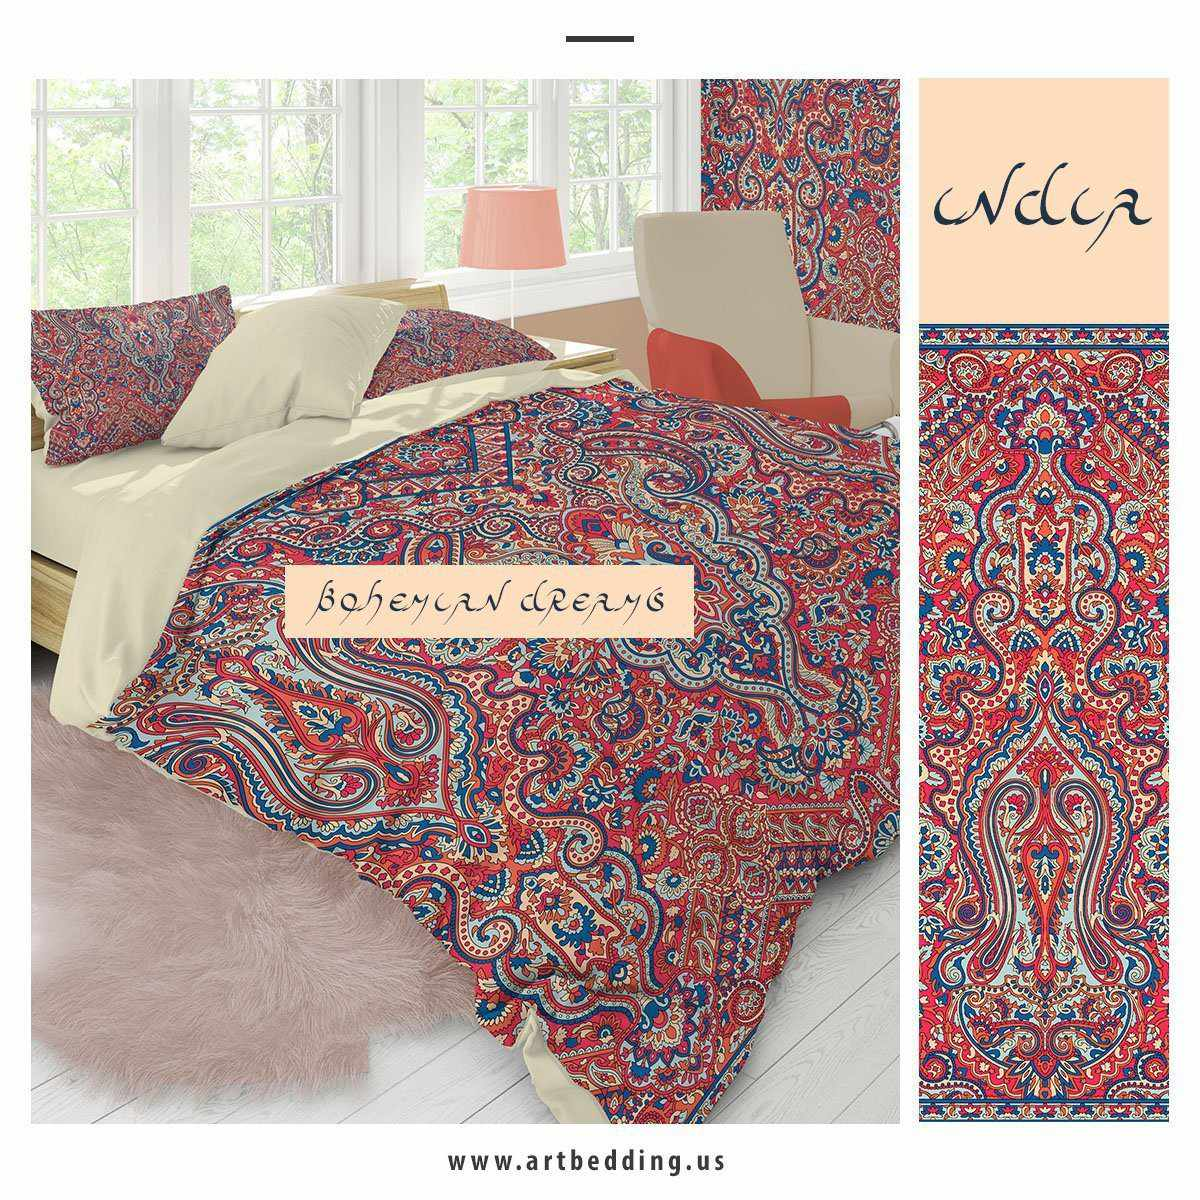 Ethno Indie Boho Bedding Indie Living Coral And Pink Duvet Cover Set Artbedding